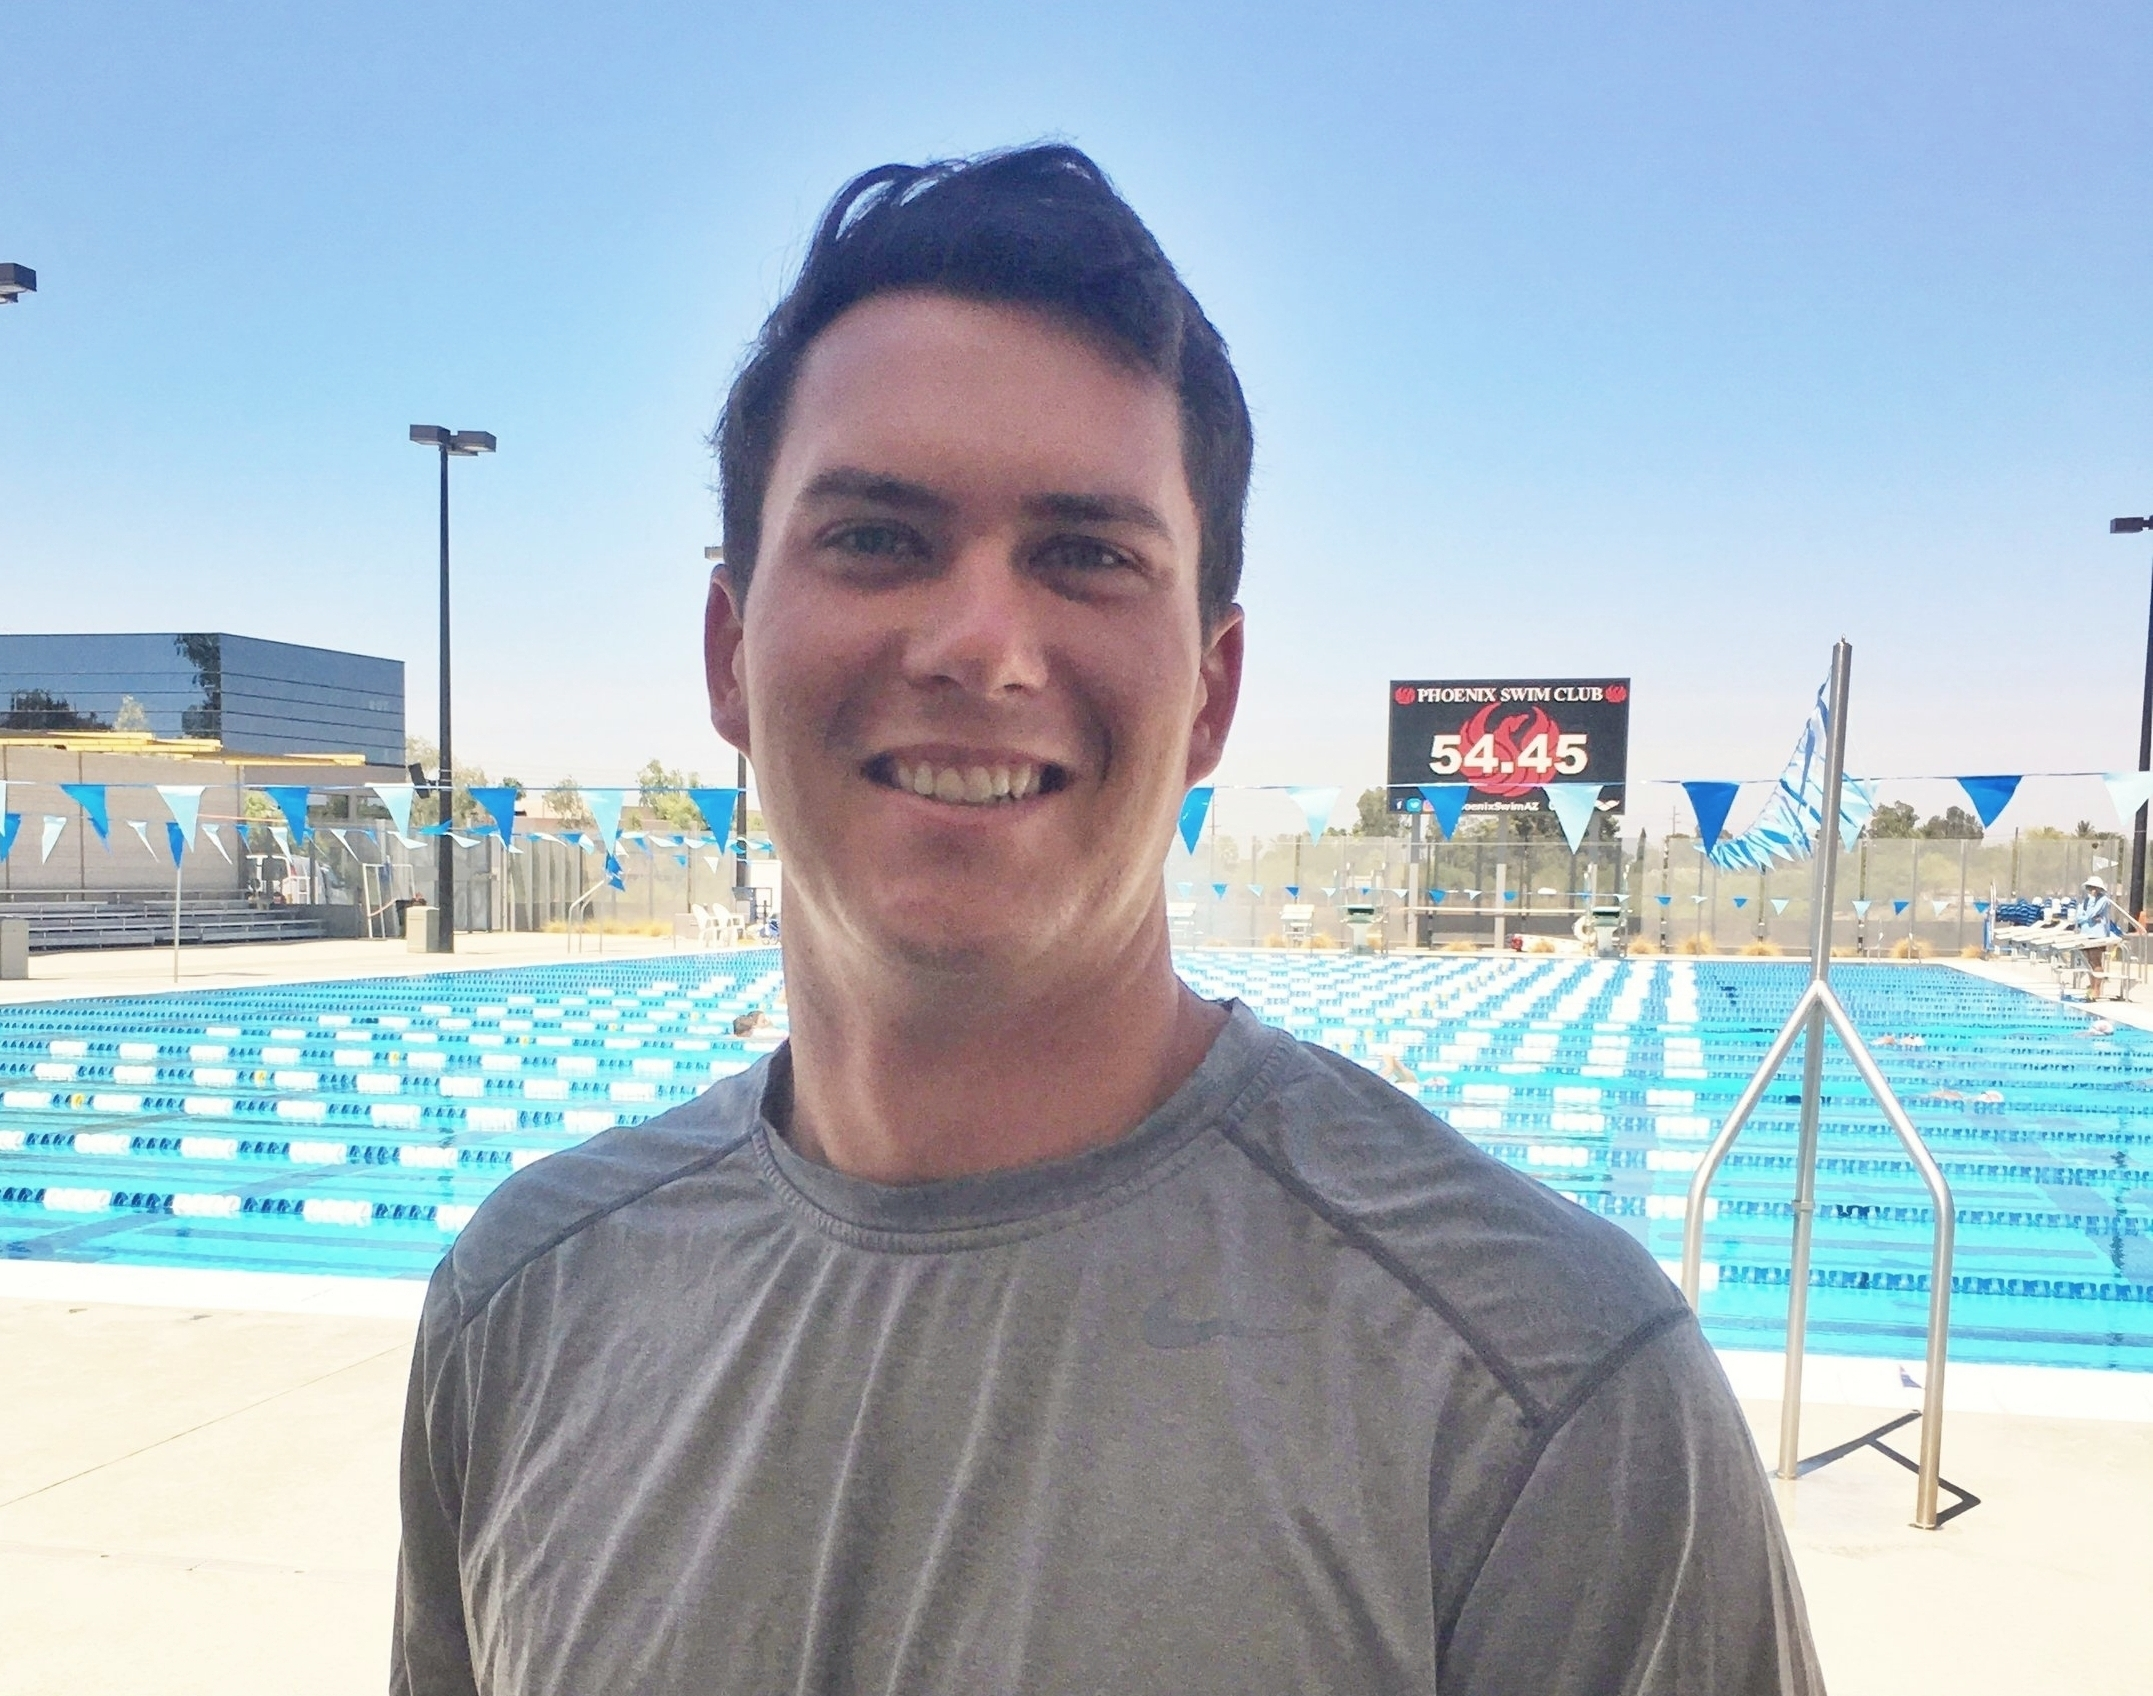 Paul Root - Phoenix - Coached world championship qualifiers20x state championsCurrent NAIA Head CoachCurrent Head of Development for a Bronze Medal ClubClinician with Olympic gold medalists and world record holdersEmail: Paul@americancollegeplacement.com